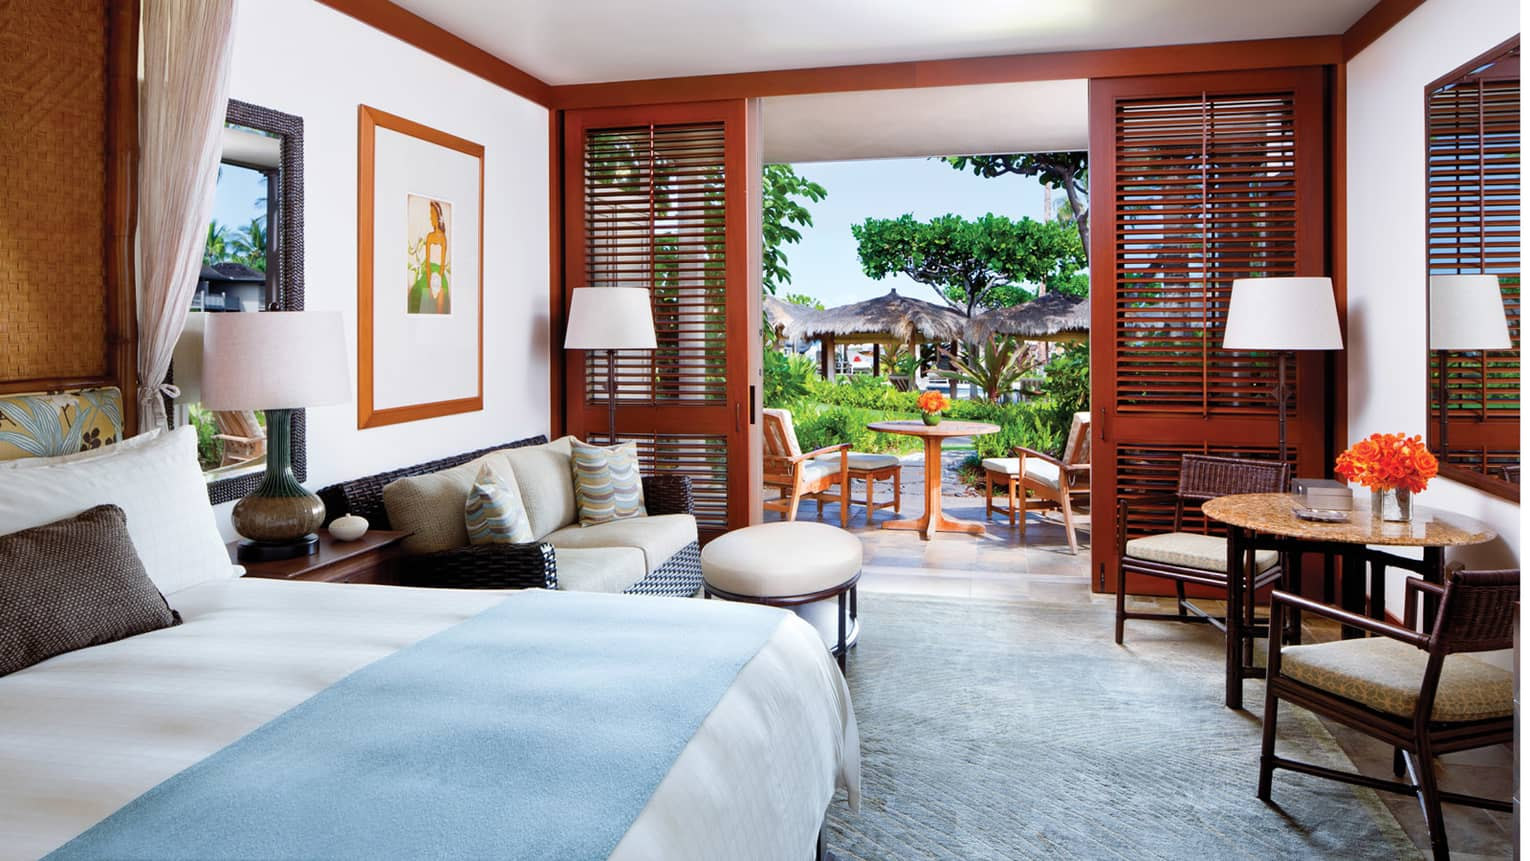 Poolside Room bed with blue blanket, wicker loveseat and ottoman, table, open wood patio shutters